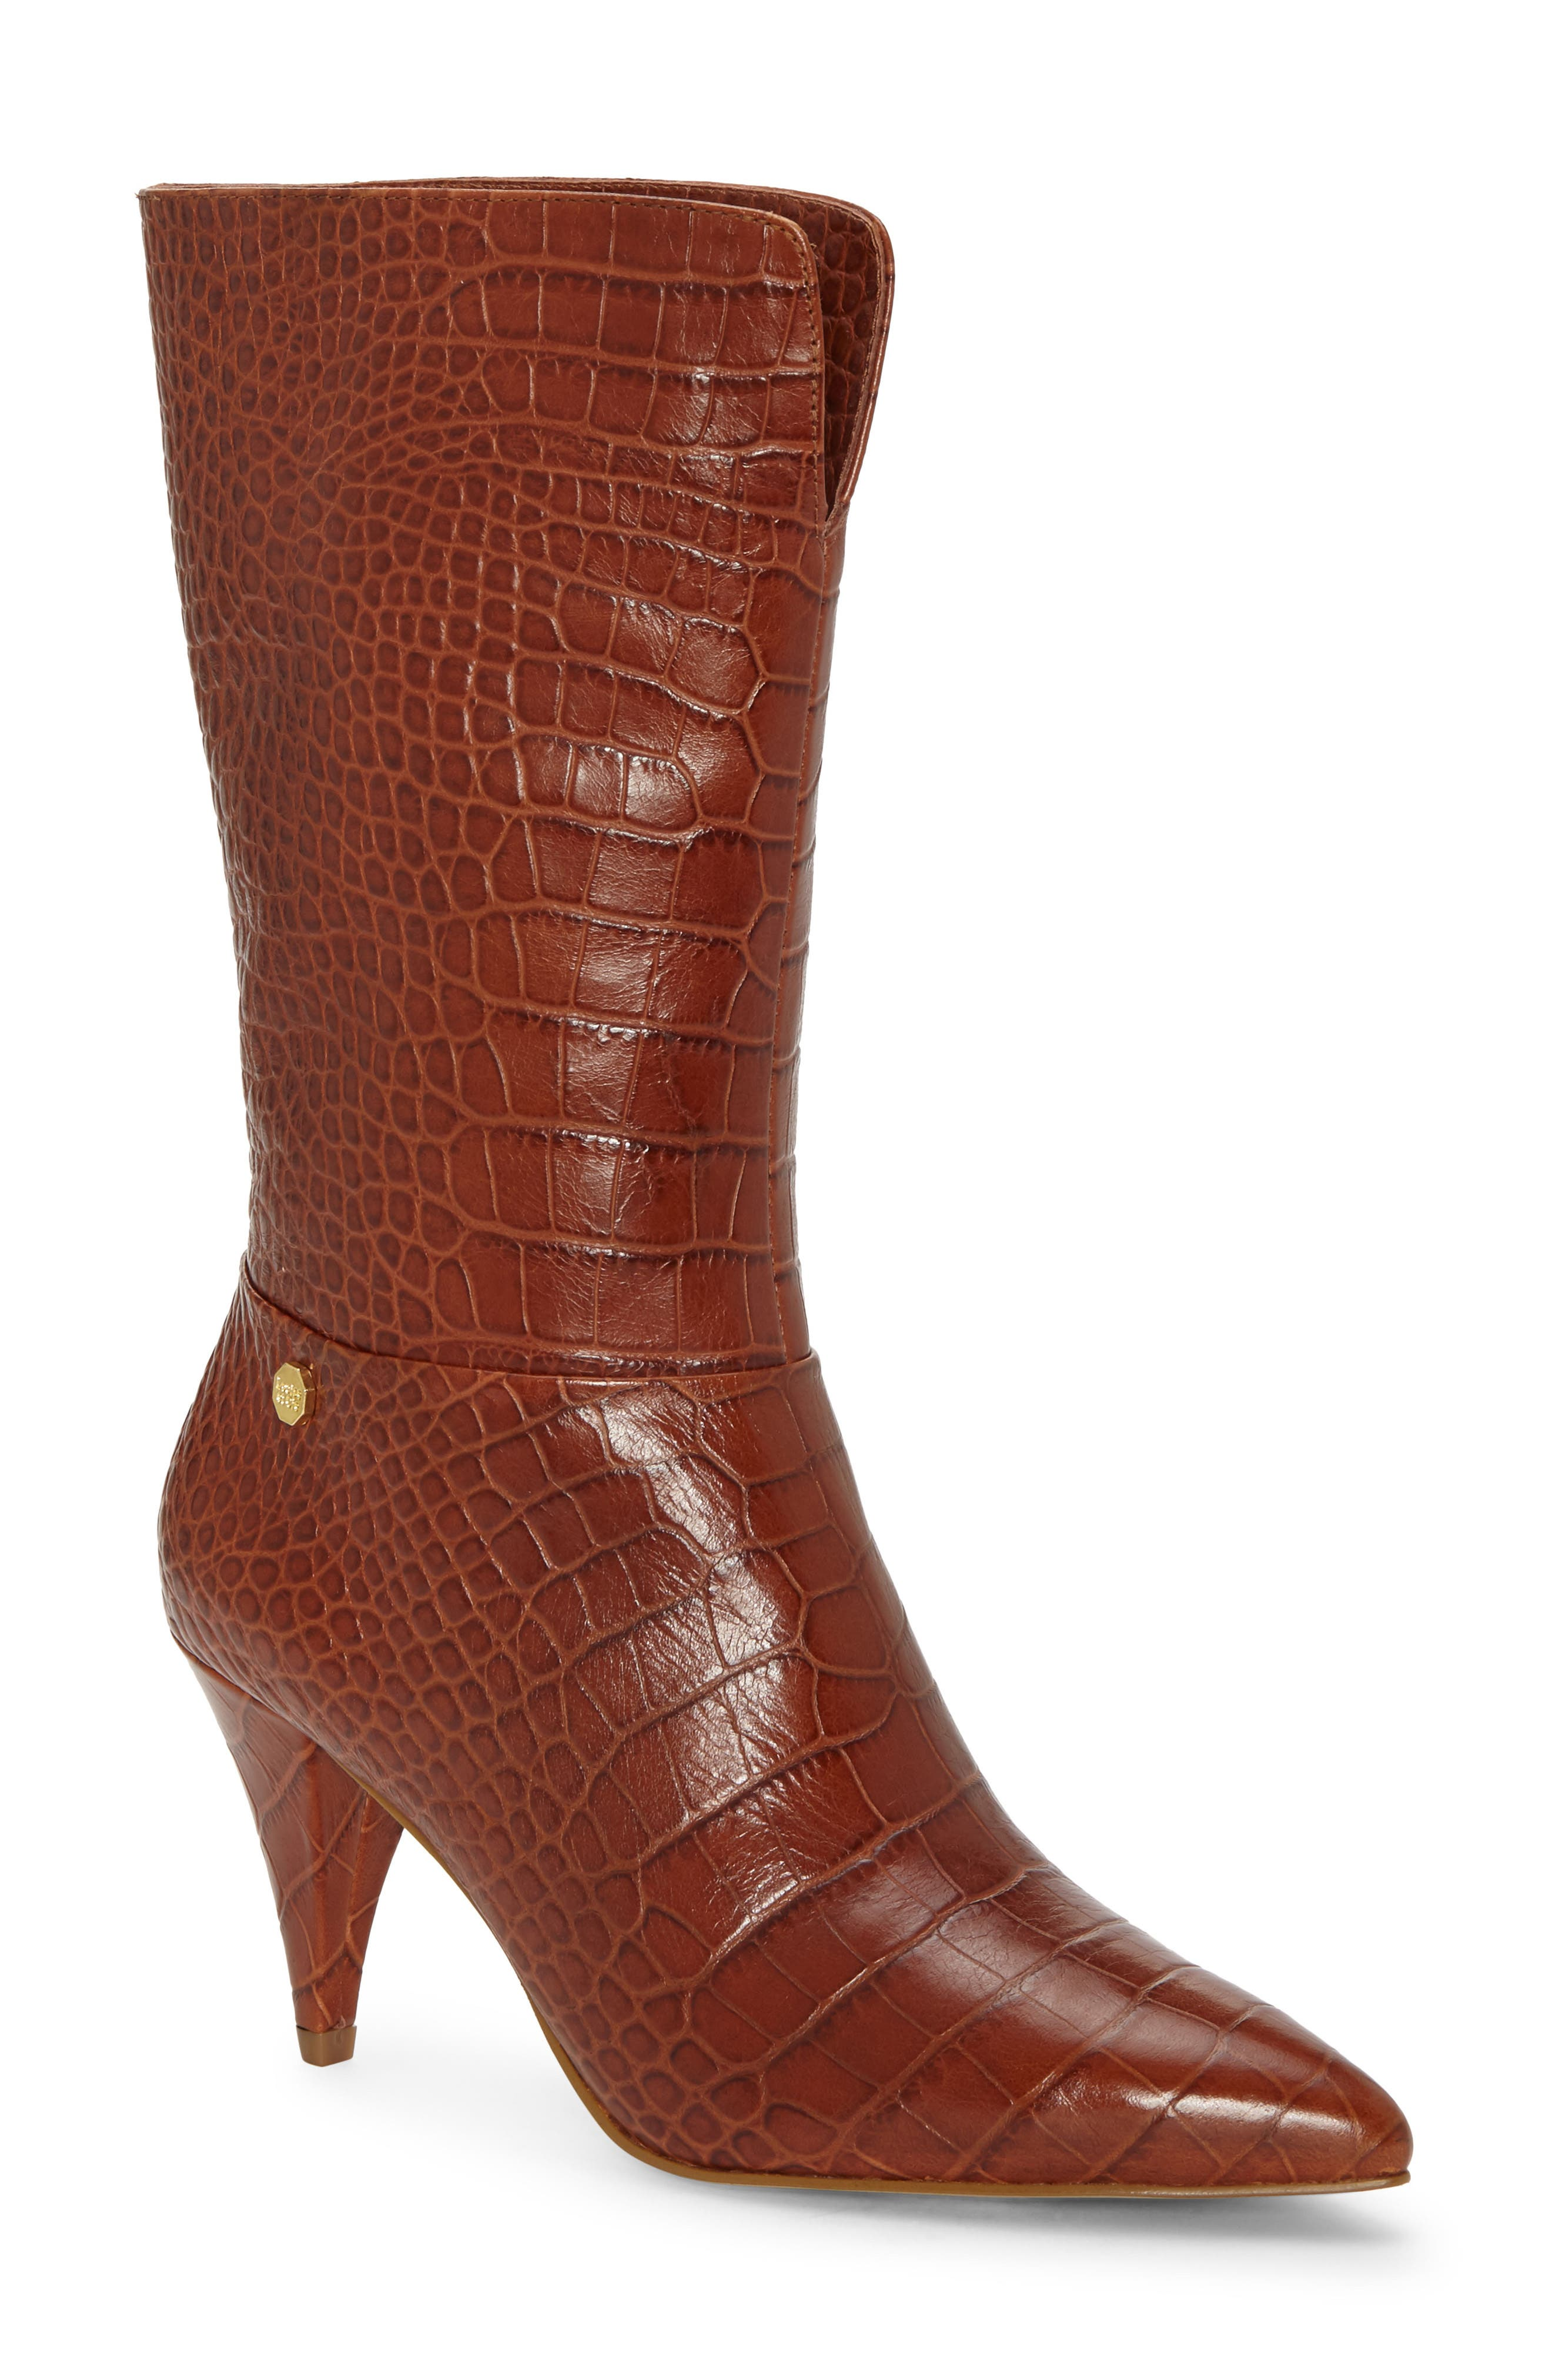 Image of Louise et Cie Winslow Leather Boot